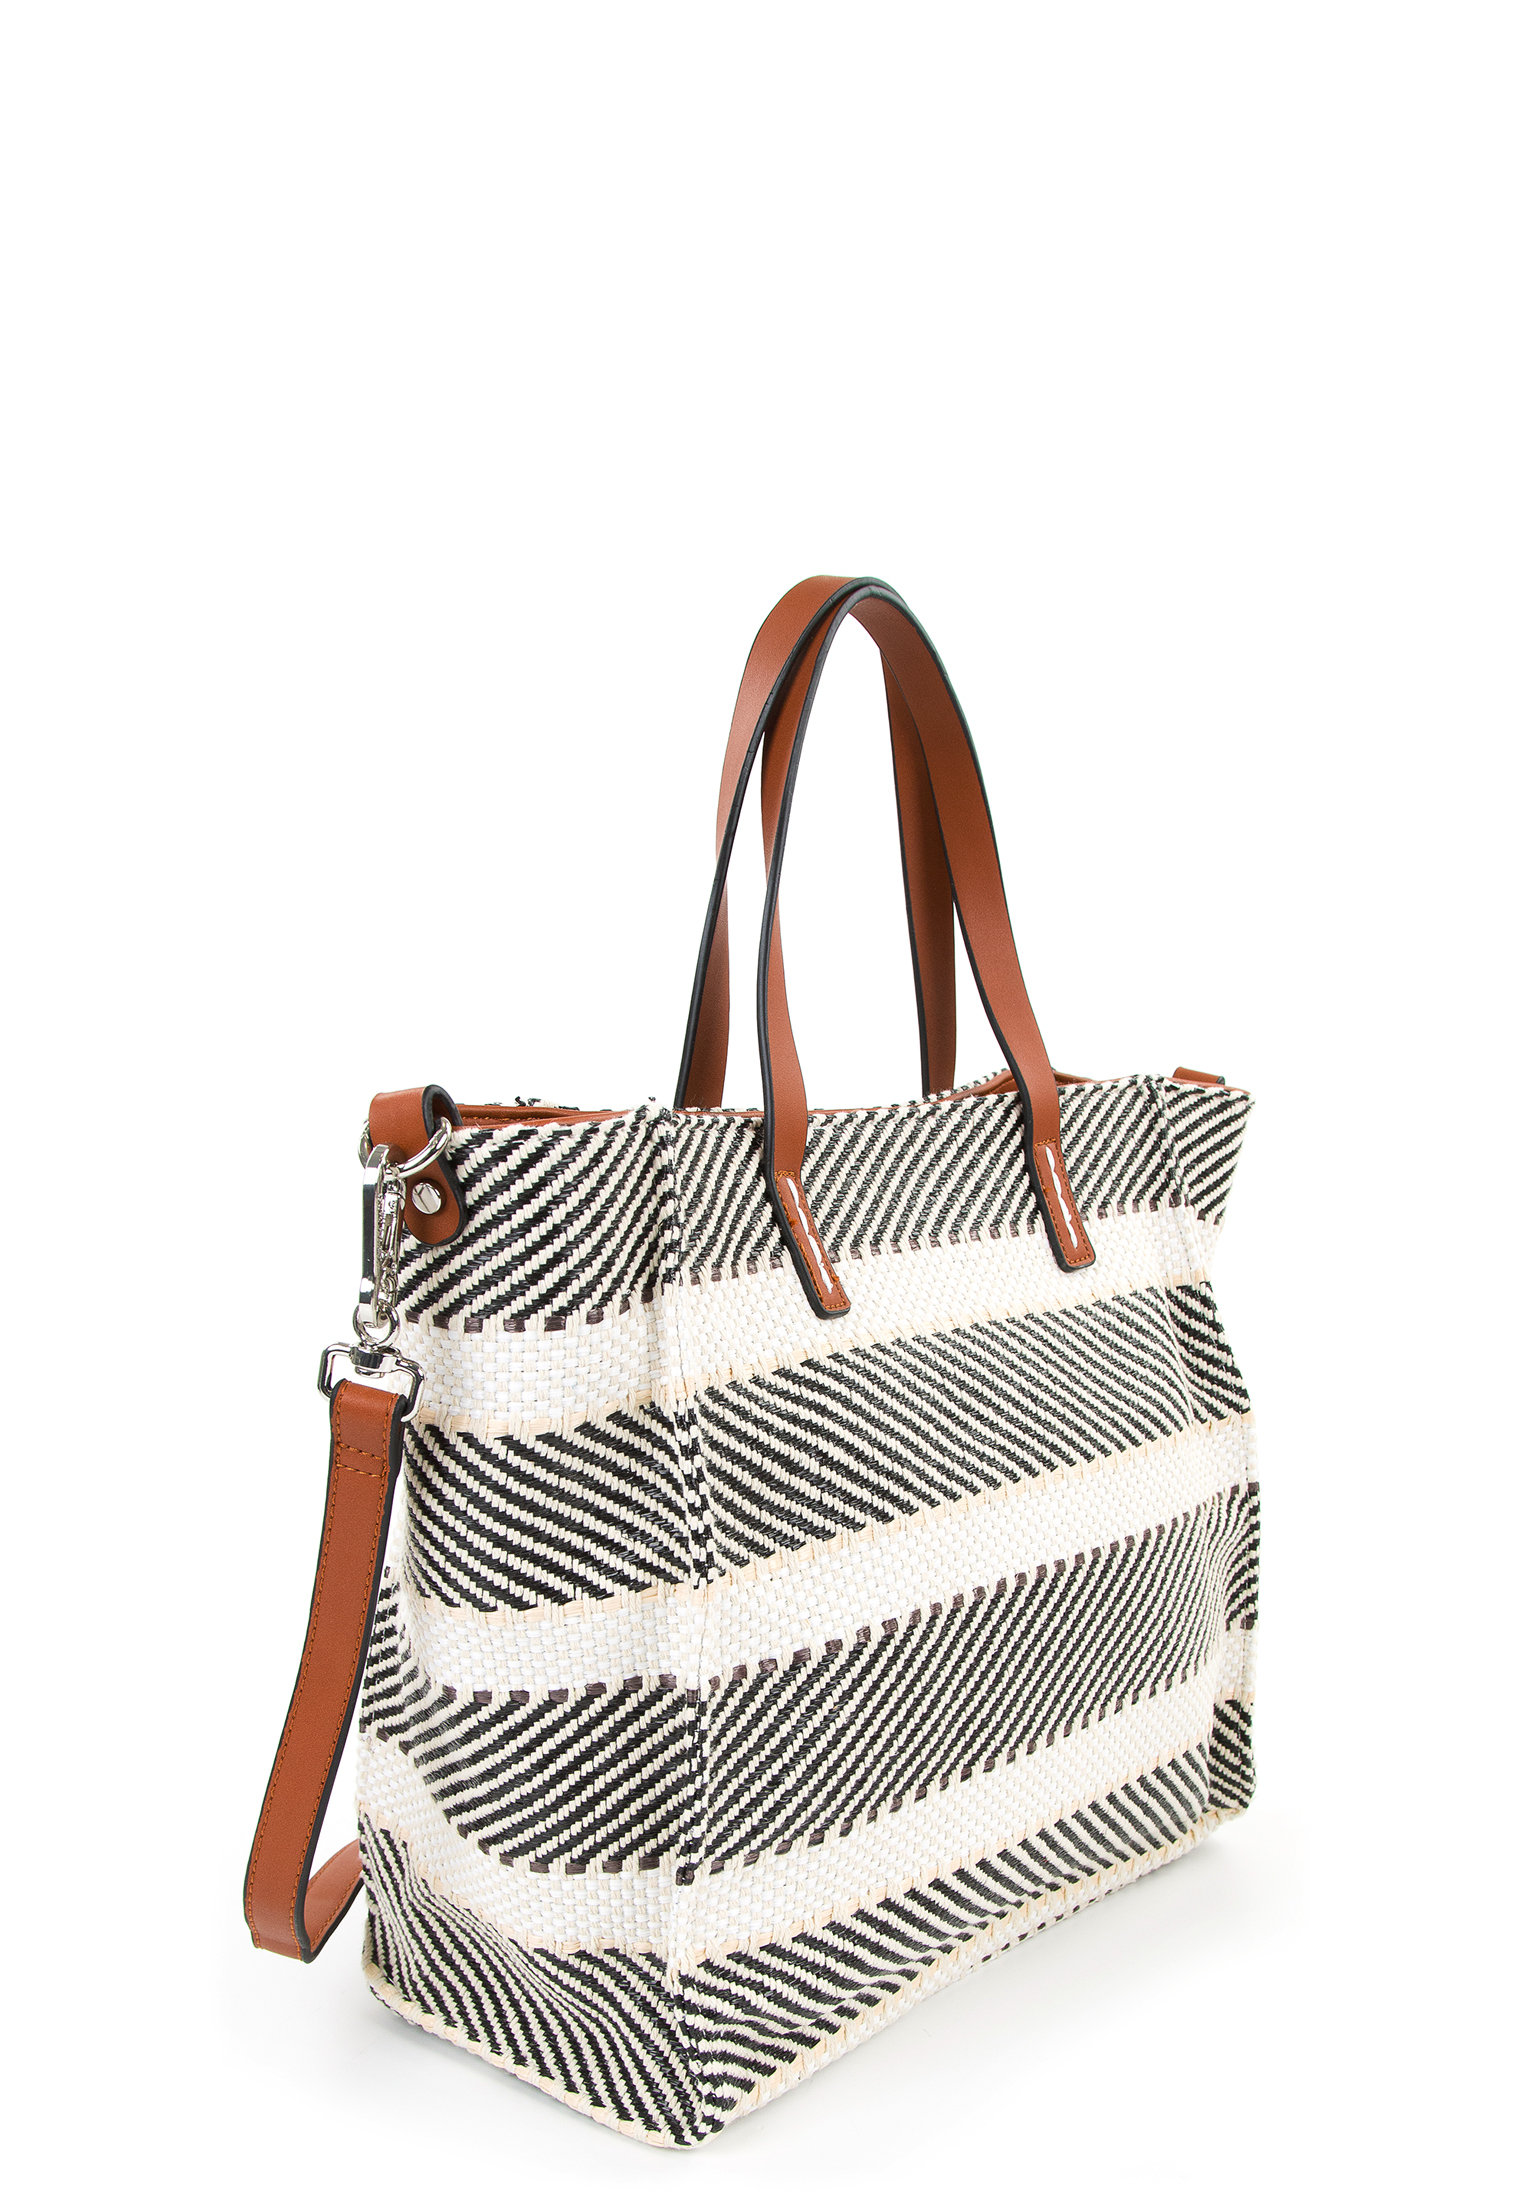 Shopper SURI Black Label Gracy mittel